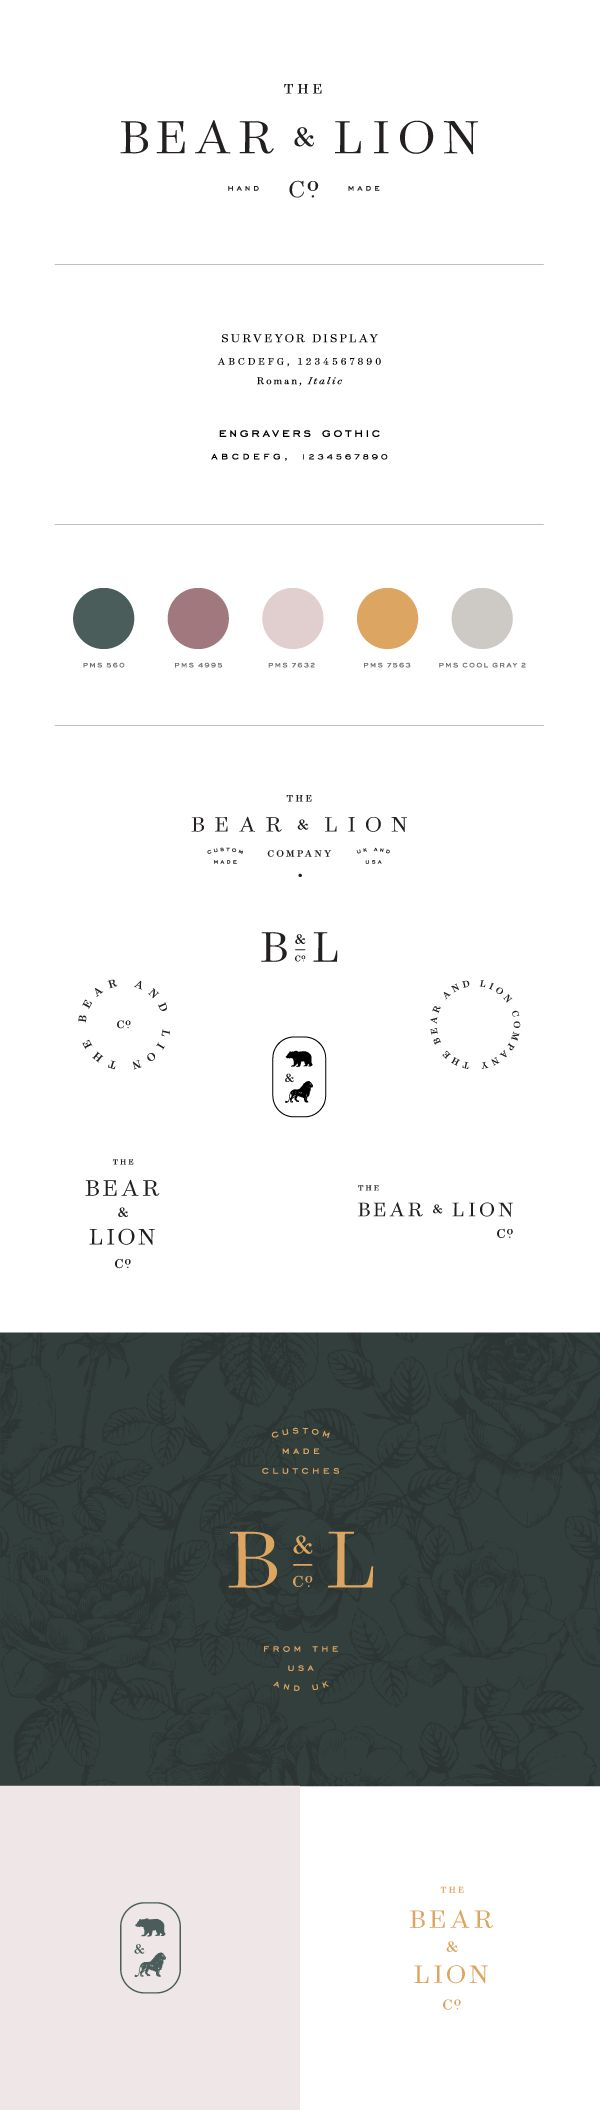 The Bear & Lion Co. branding by Saturday Studio